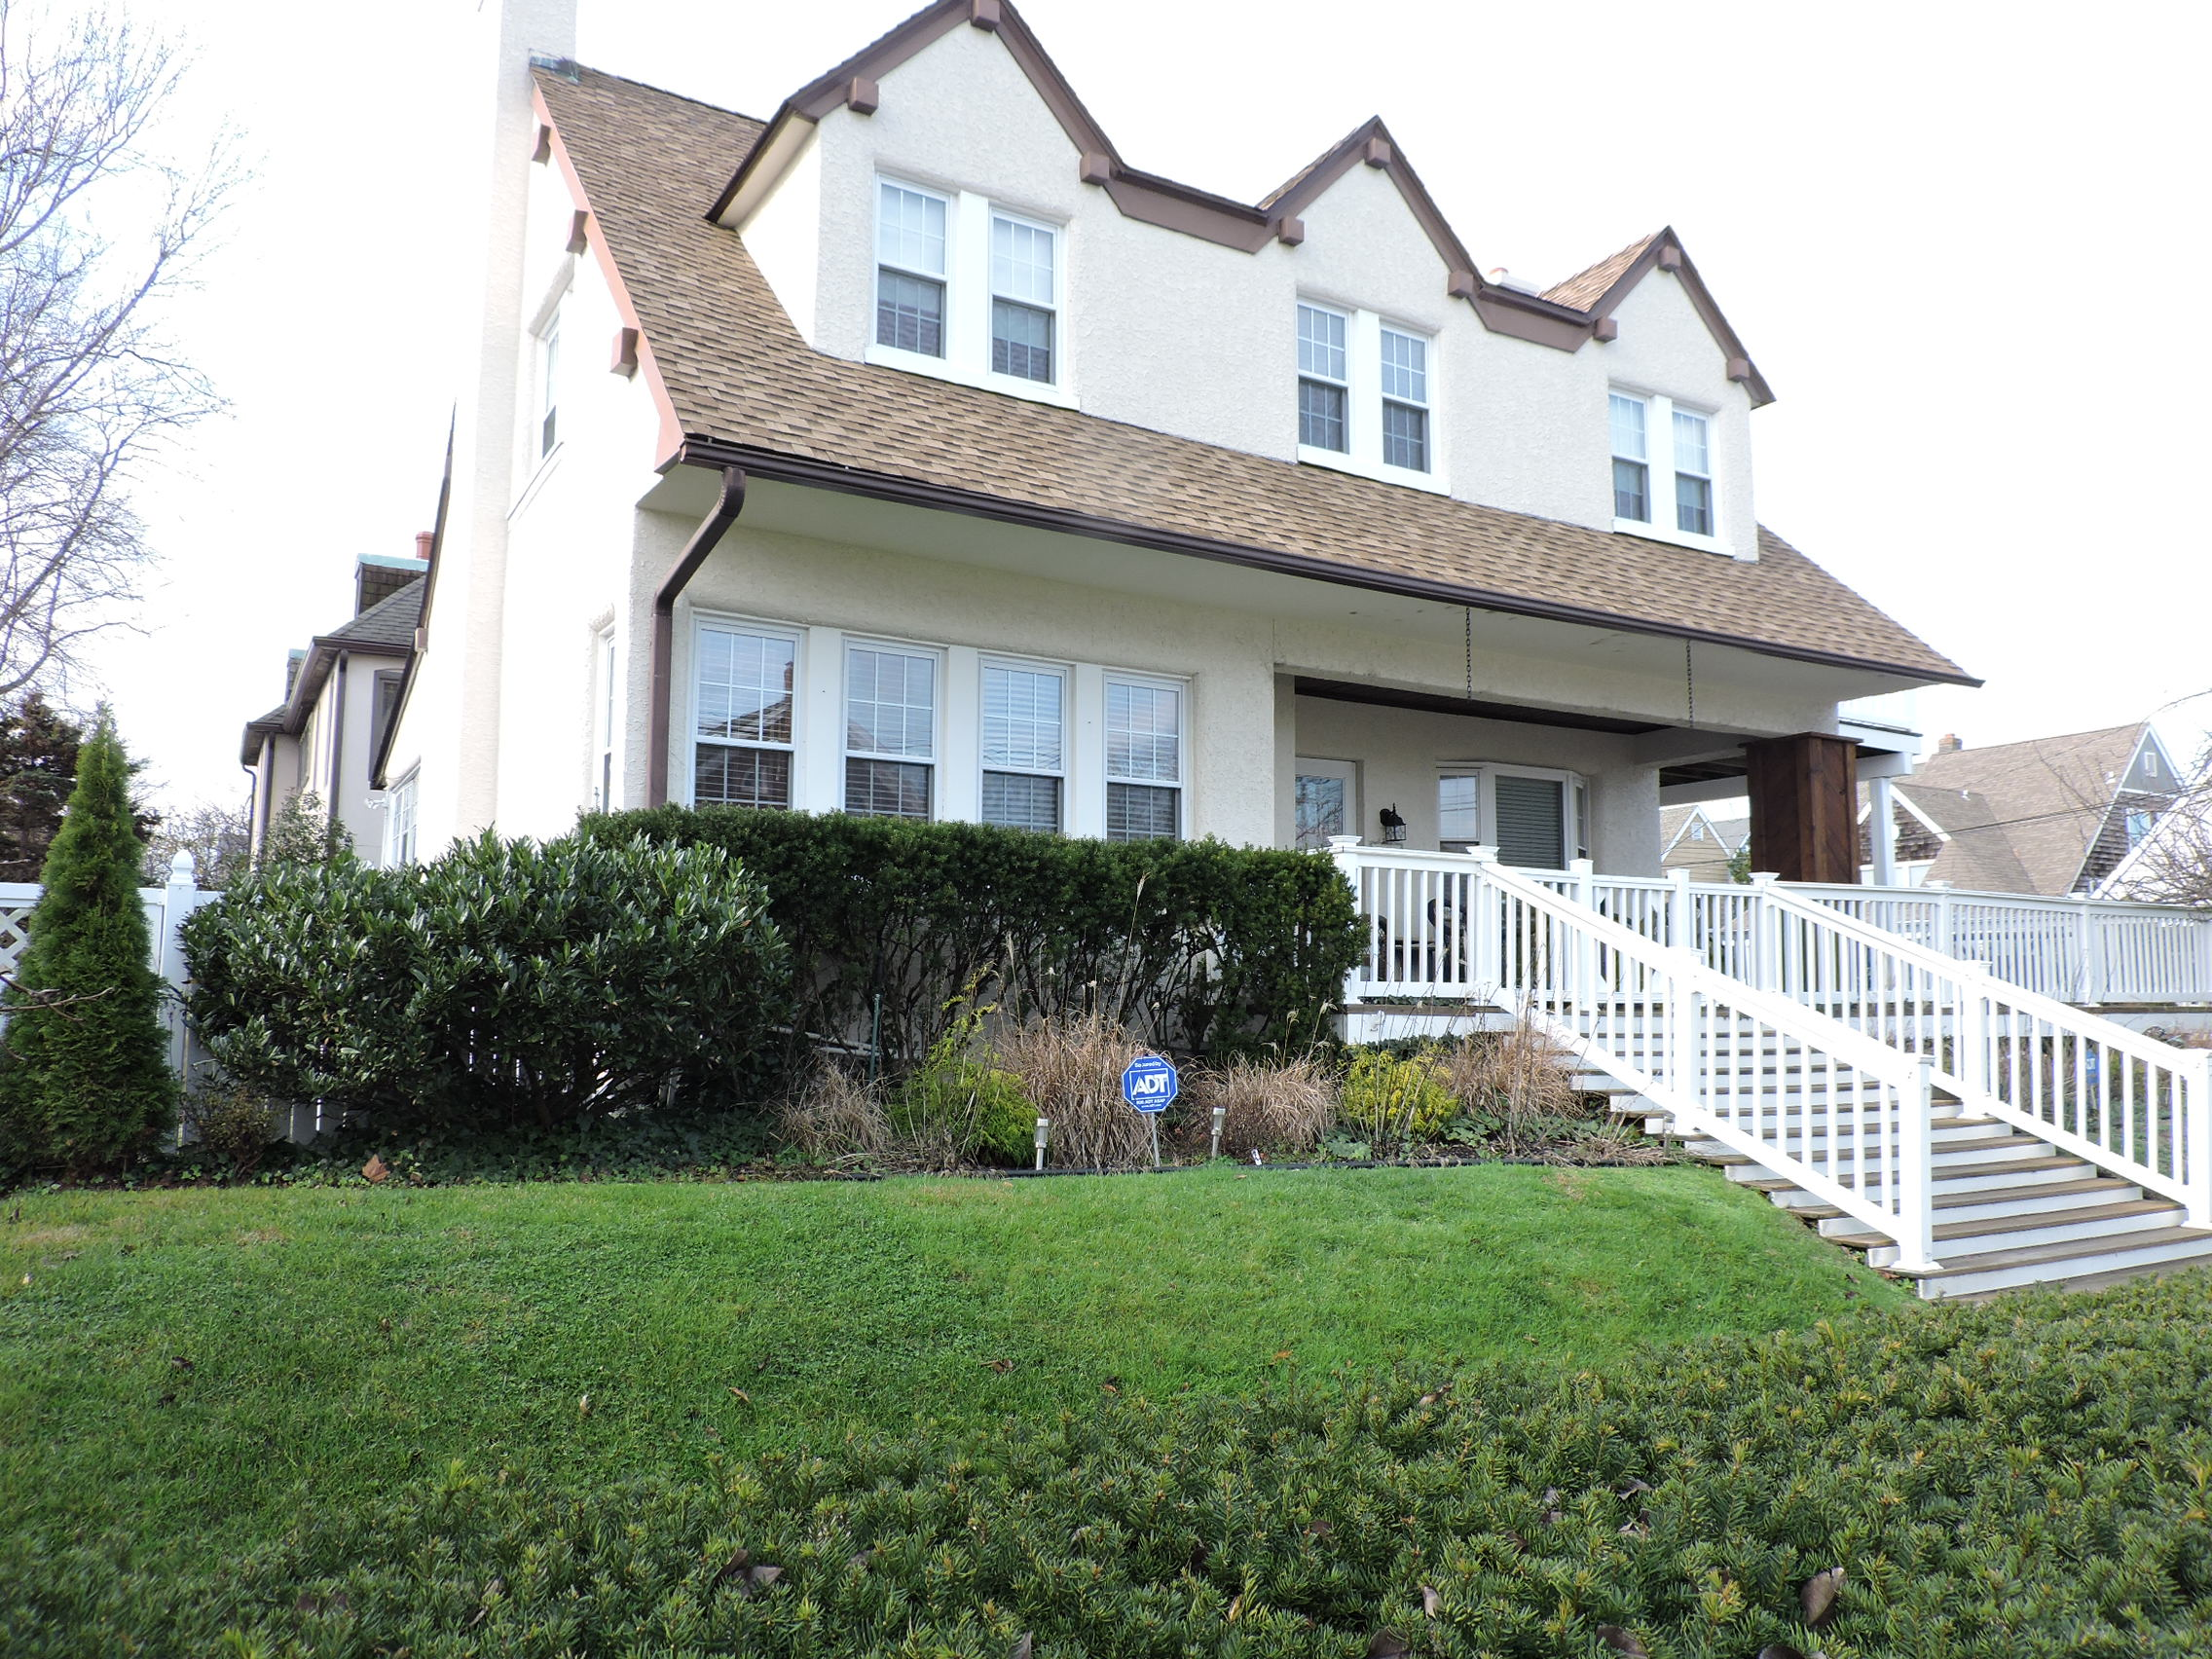 Single Family Home for Sale at 4 N Dorset Ave Ventnor, New Jersey 08406 United States